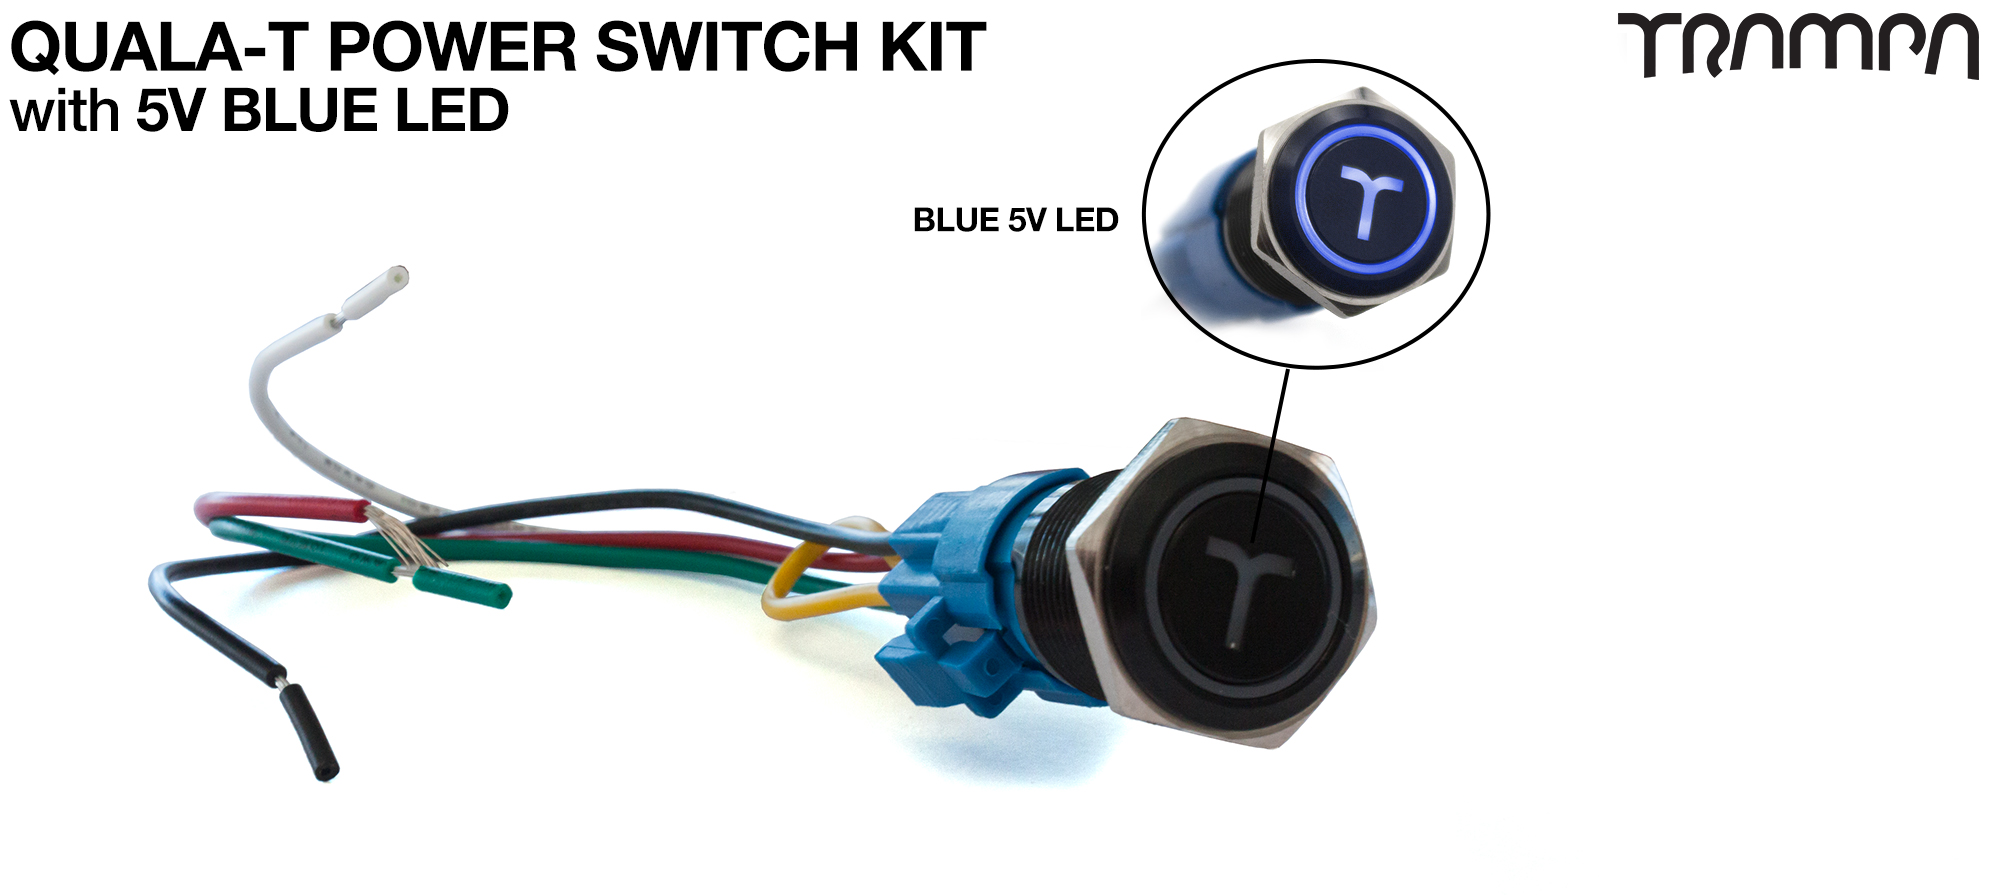 I'd like a BLUE Power Switch on my Beast Box